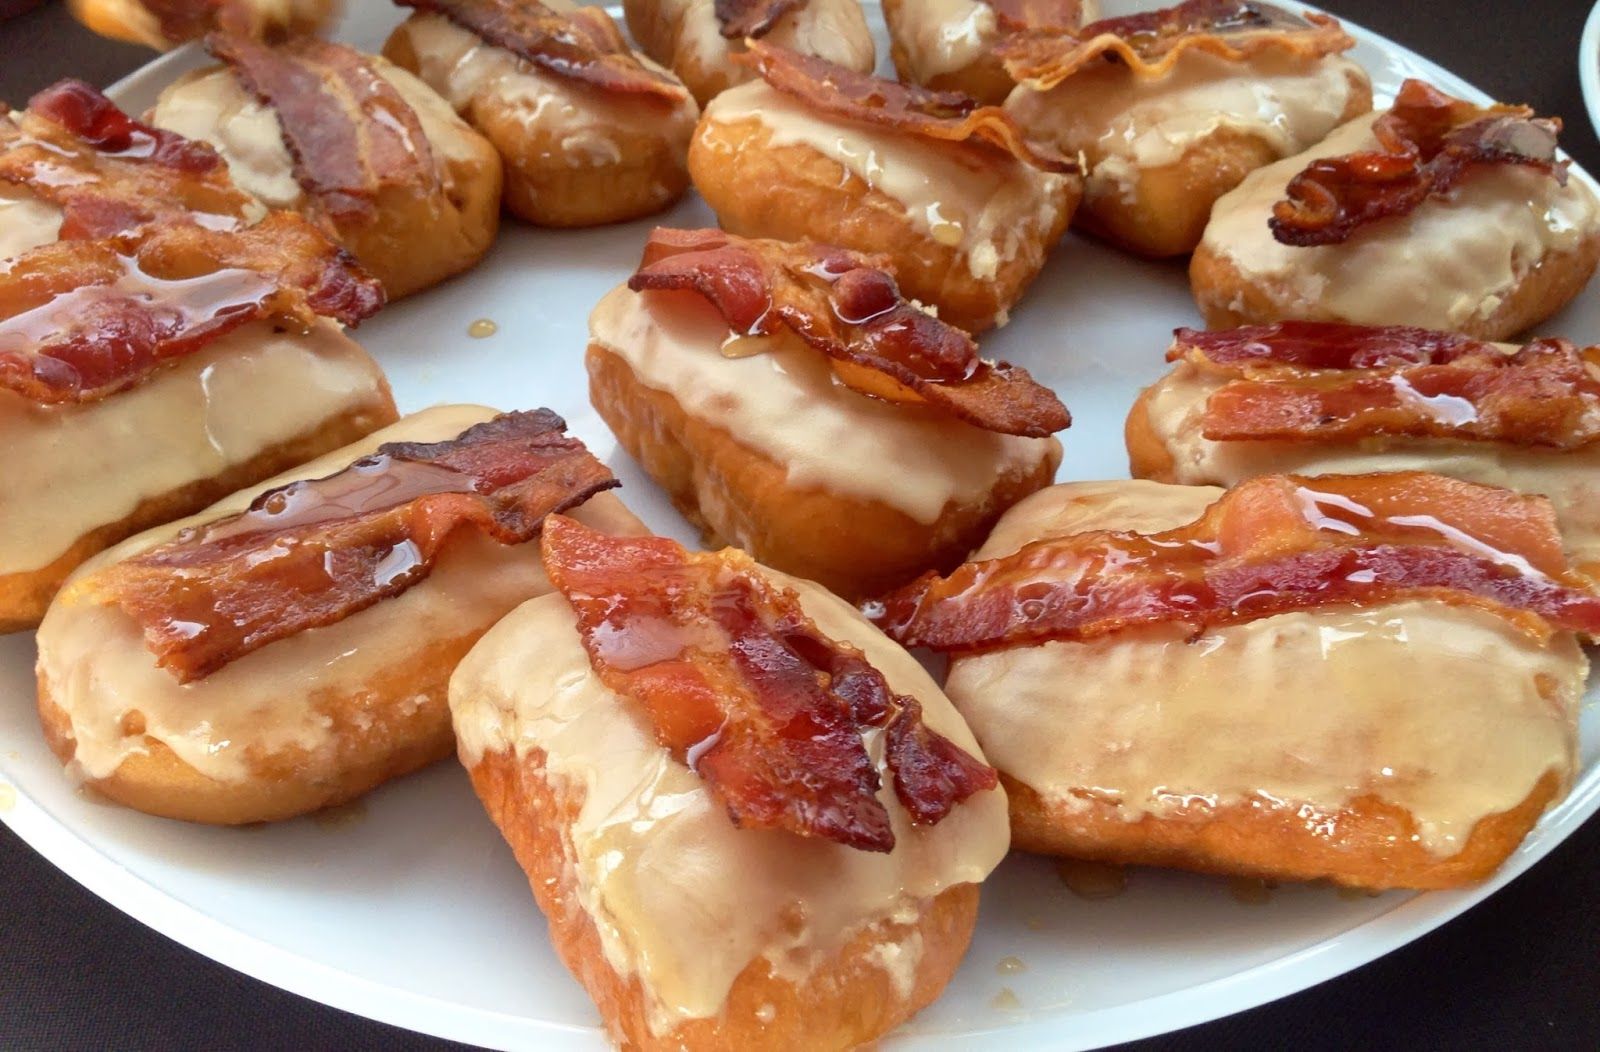 Bacon donuts from Hypnotic Donuts.Photograph by Cody Neathery.